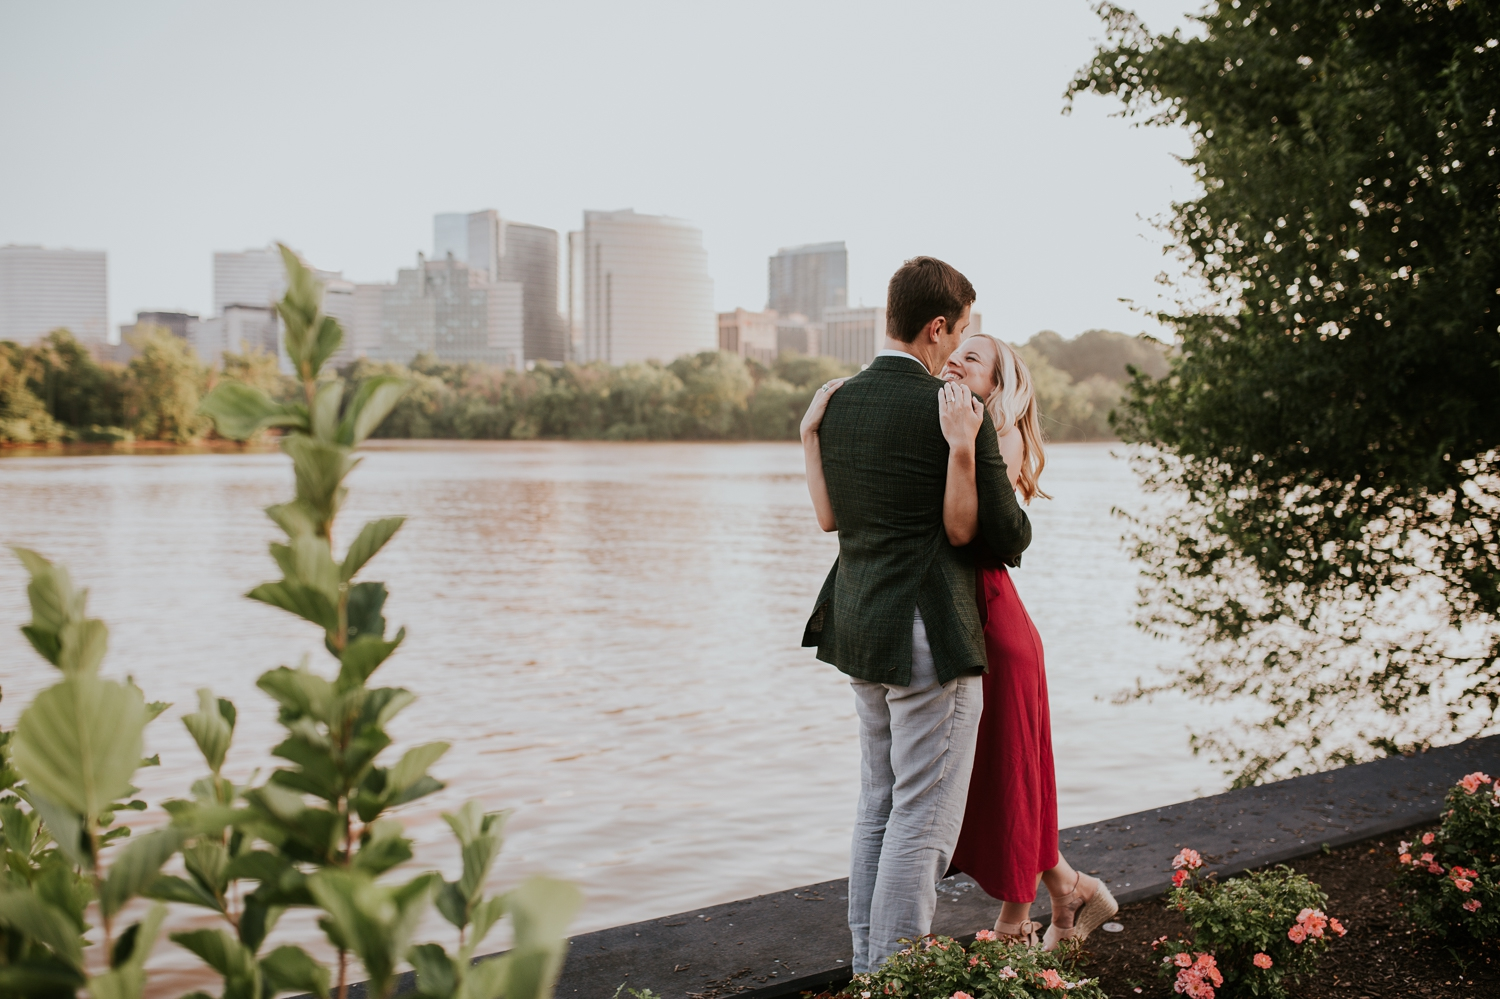 washington-dc-georgetown-water-front-engagement-photography 5.jpg